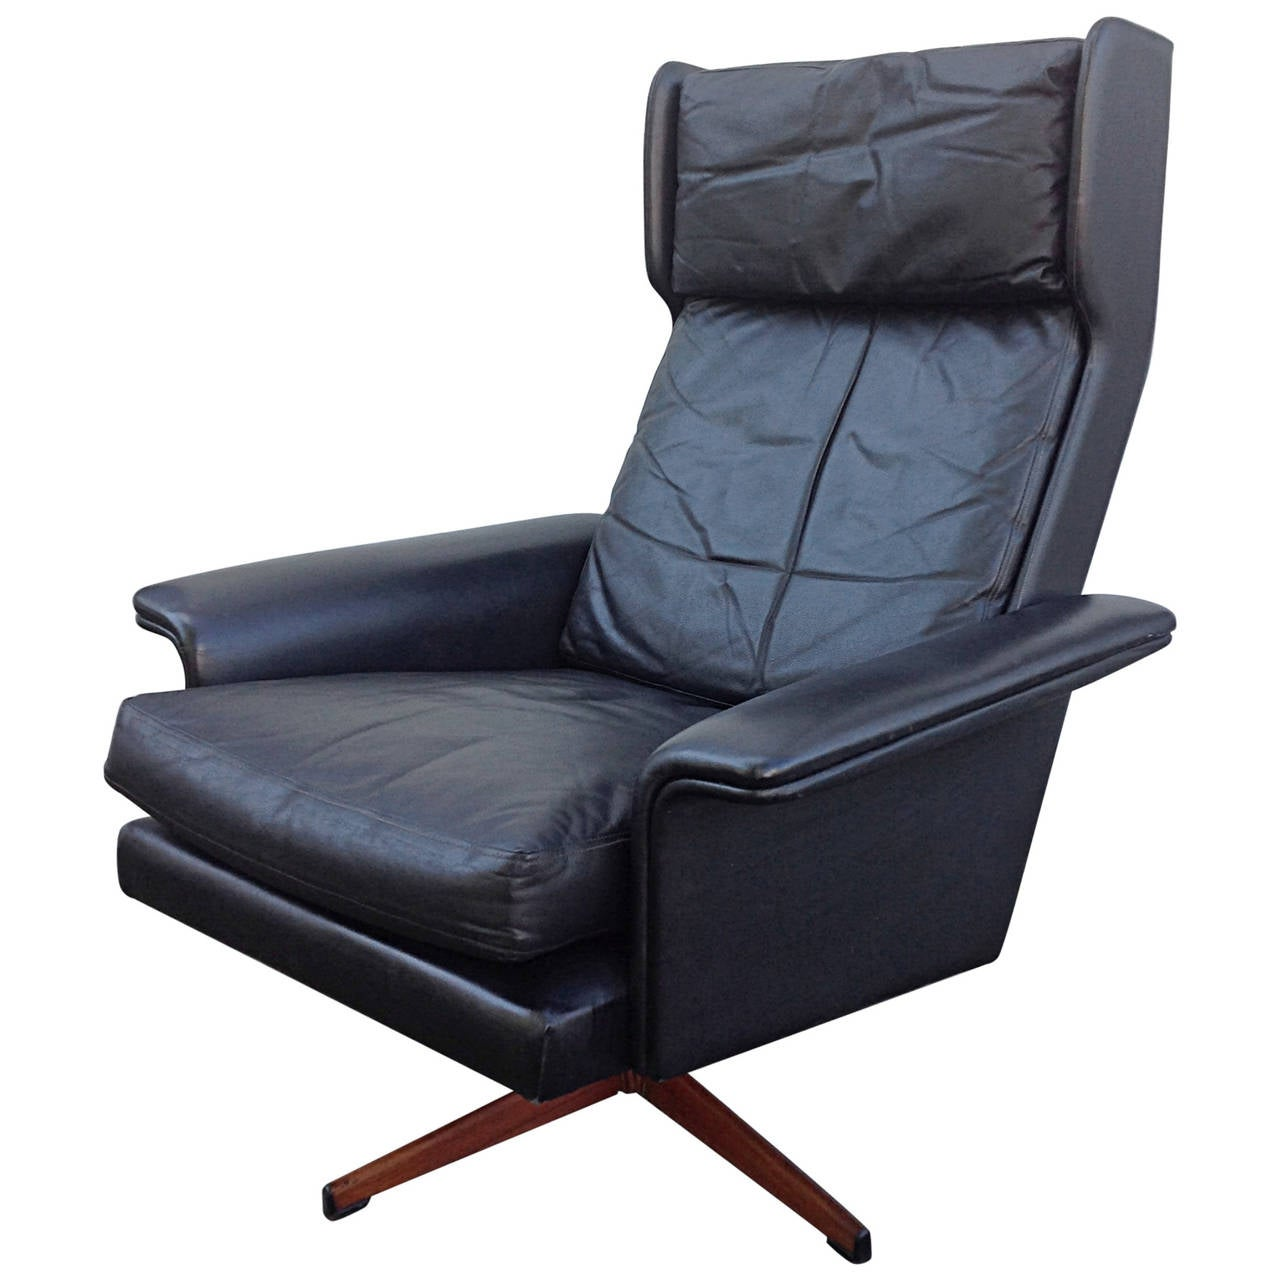 Black Leather Wingback Swivel Chair by Komfort at 1stdibs